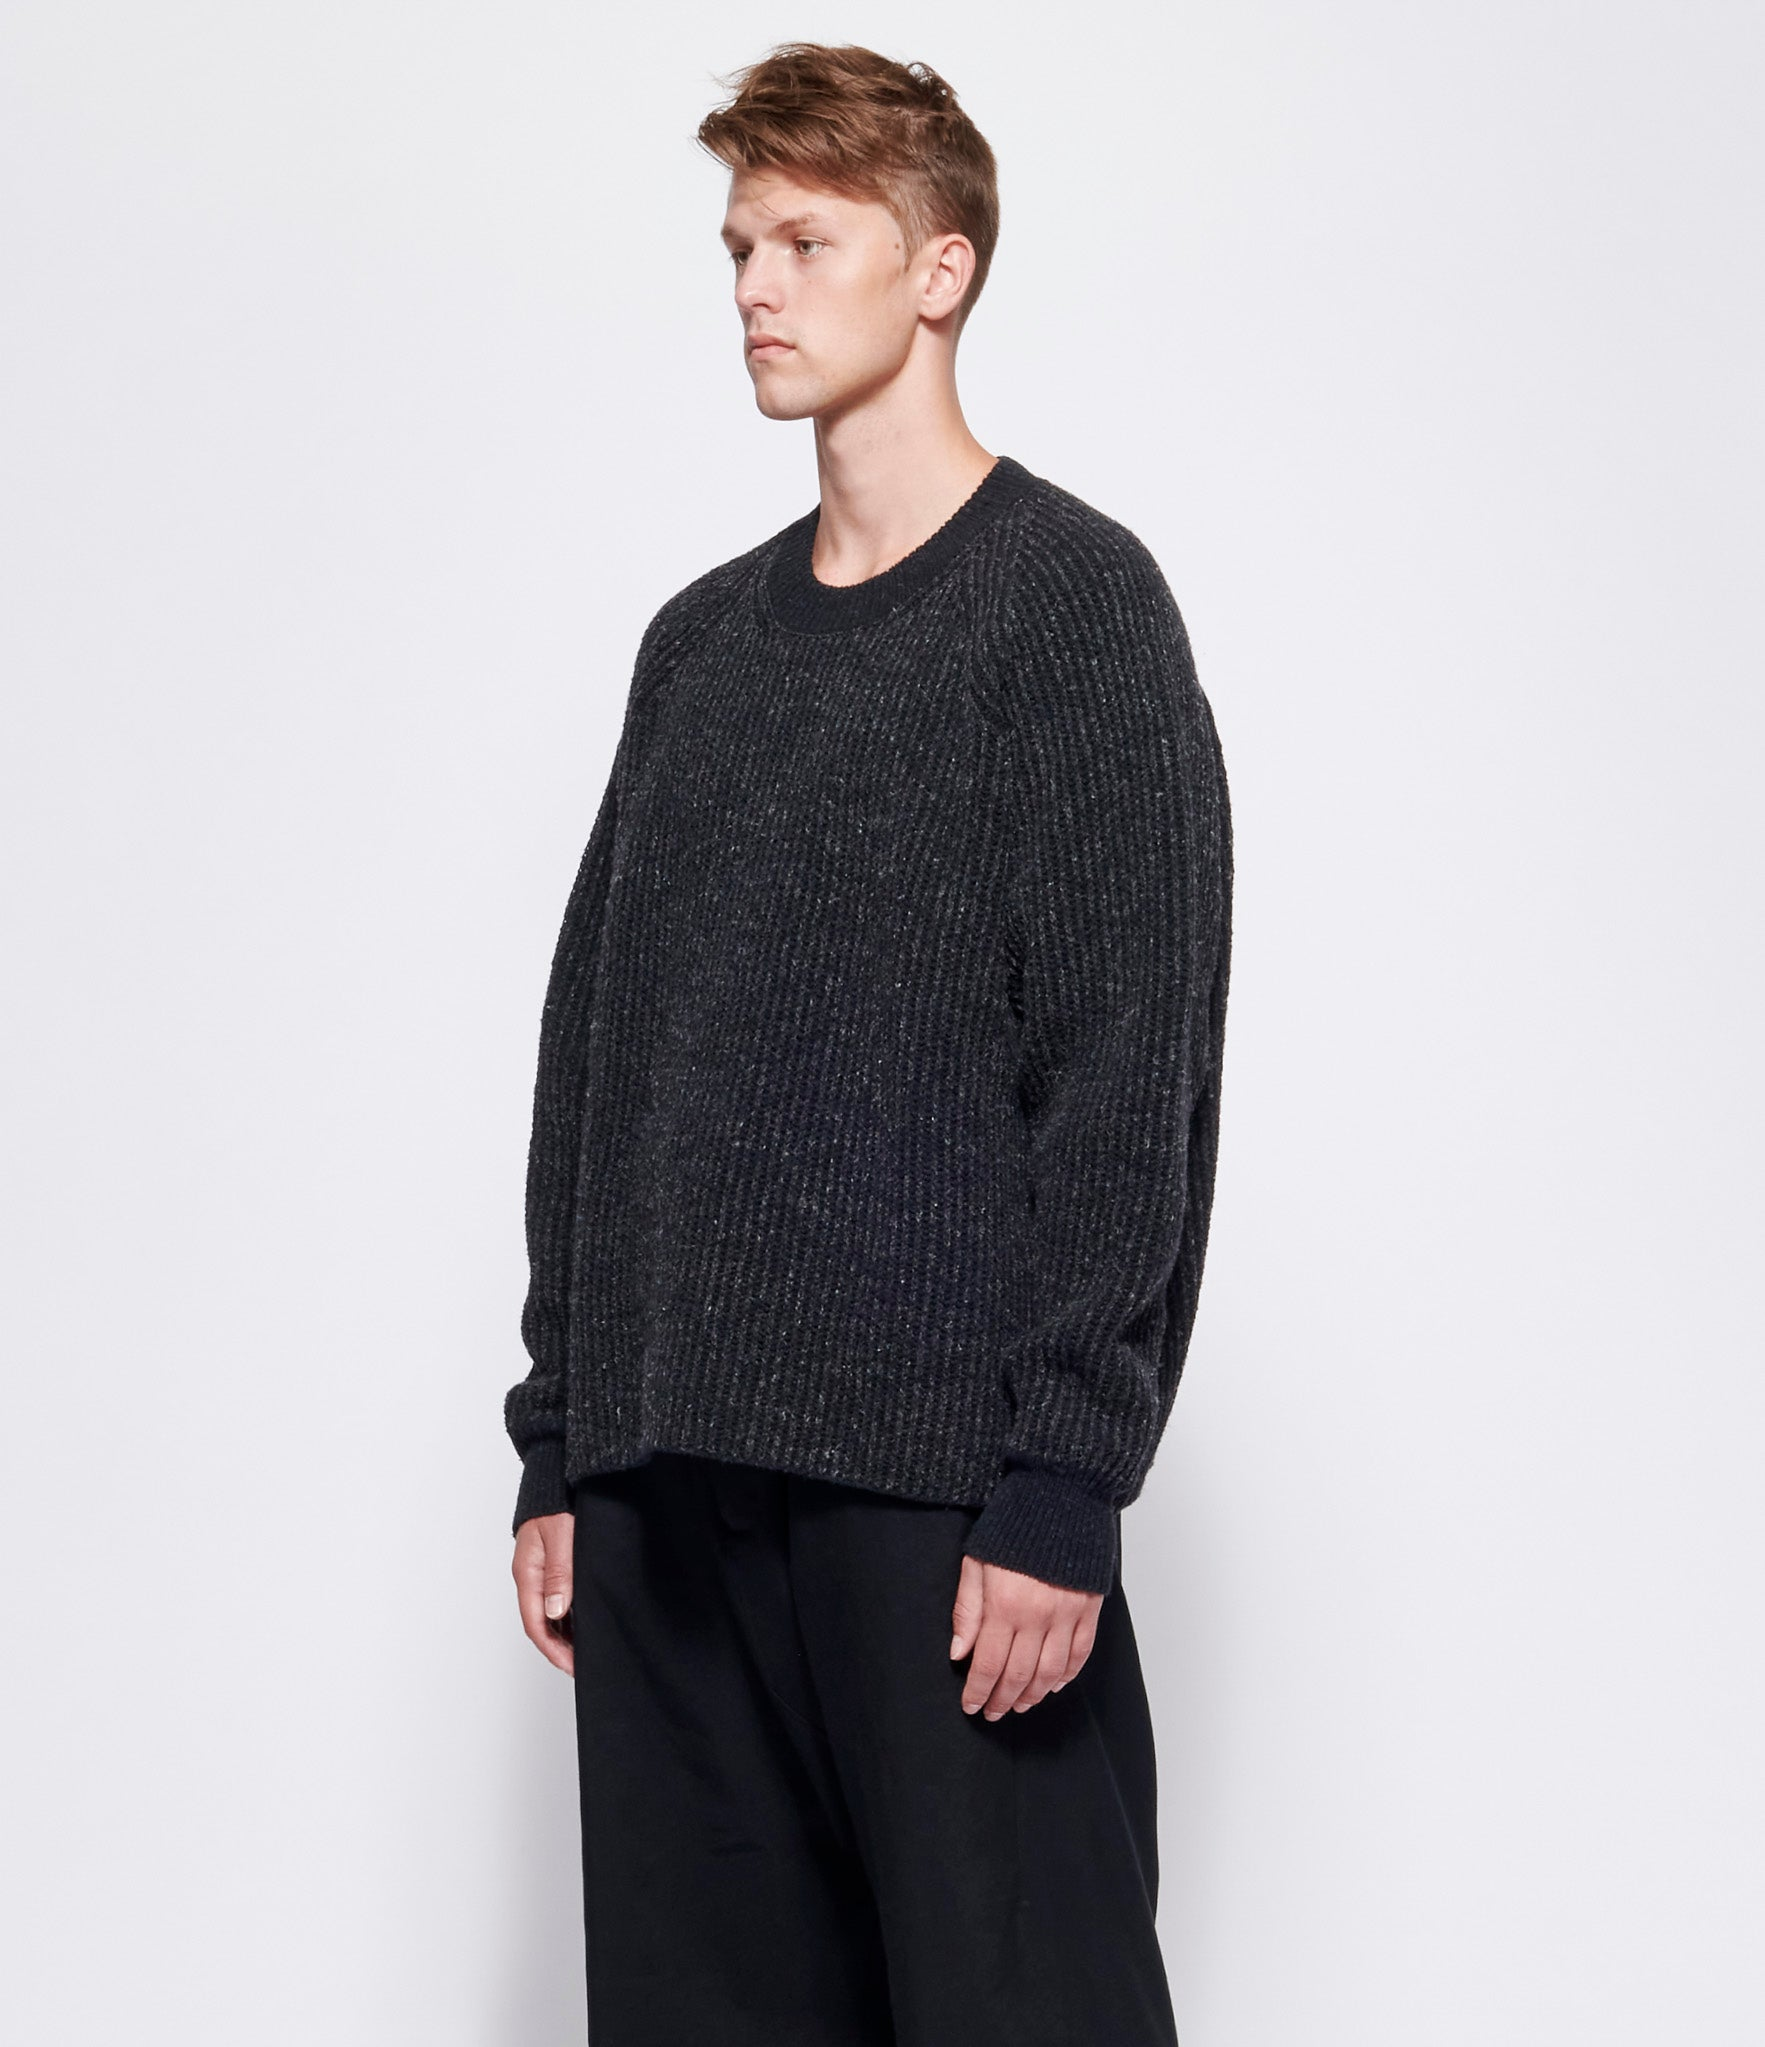 Jan Jan Van Essche #49 Sweater